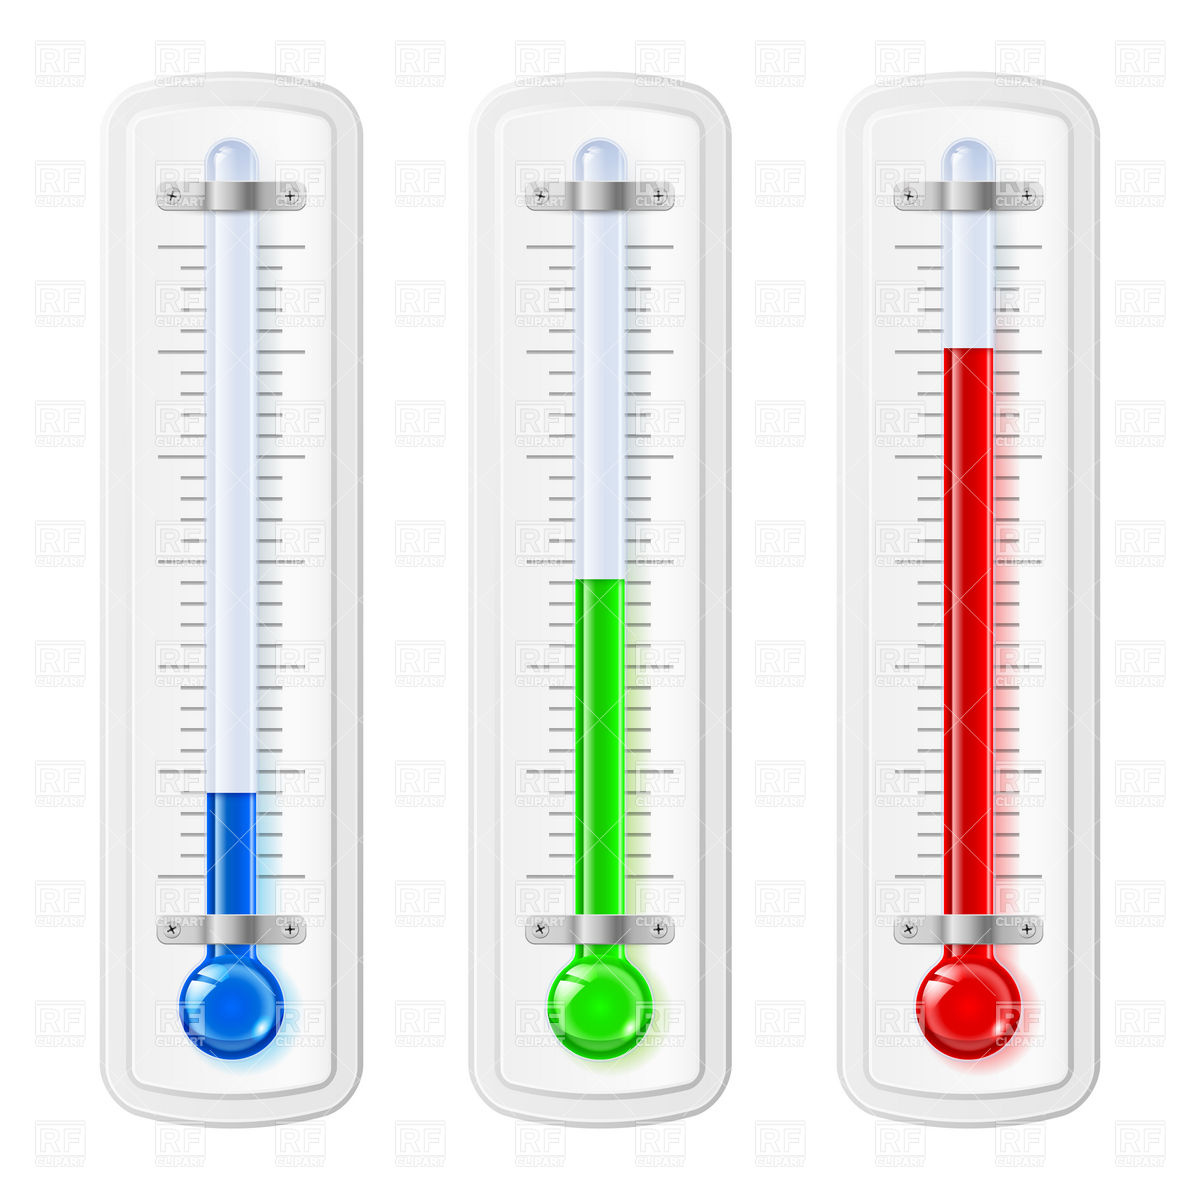 Thermometer Clipart at GetDrawings.com.